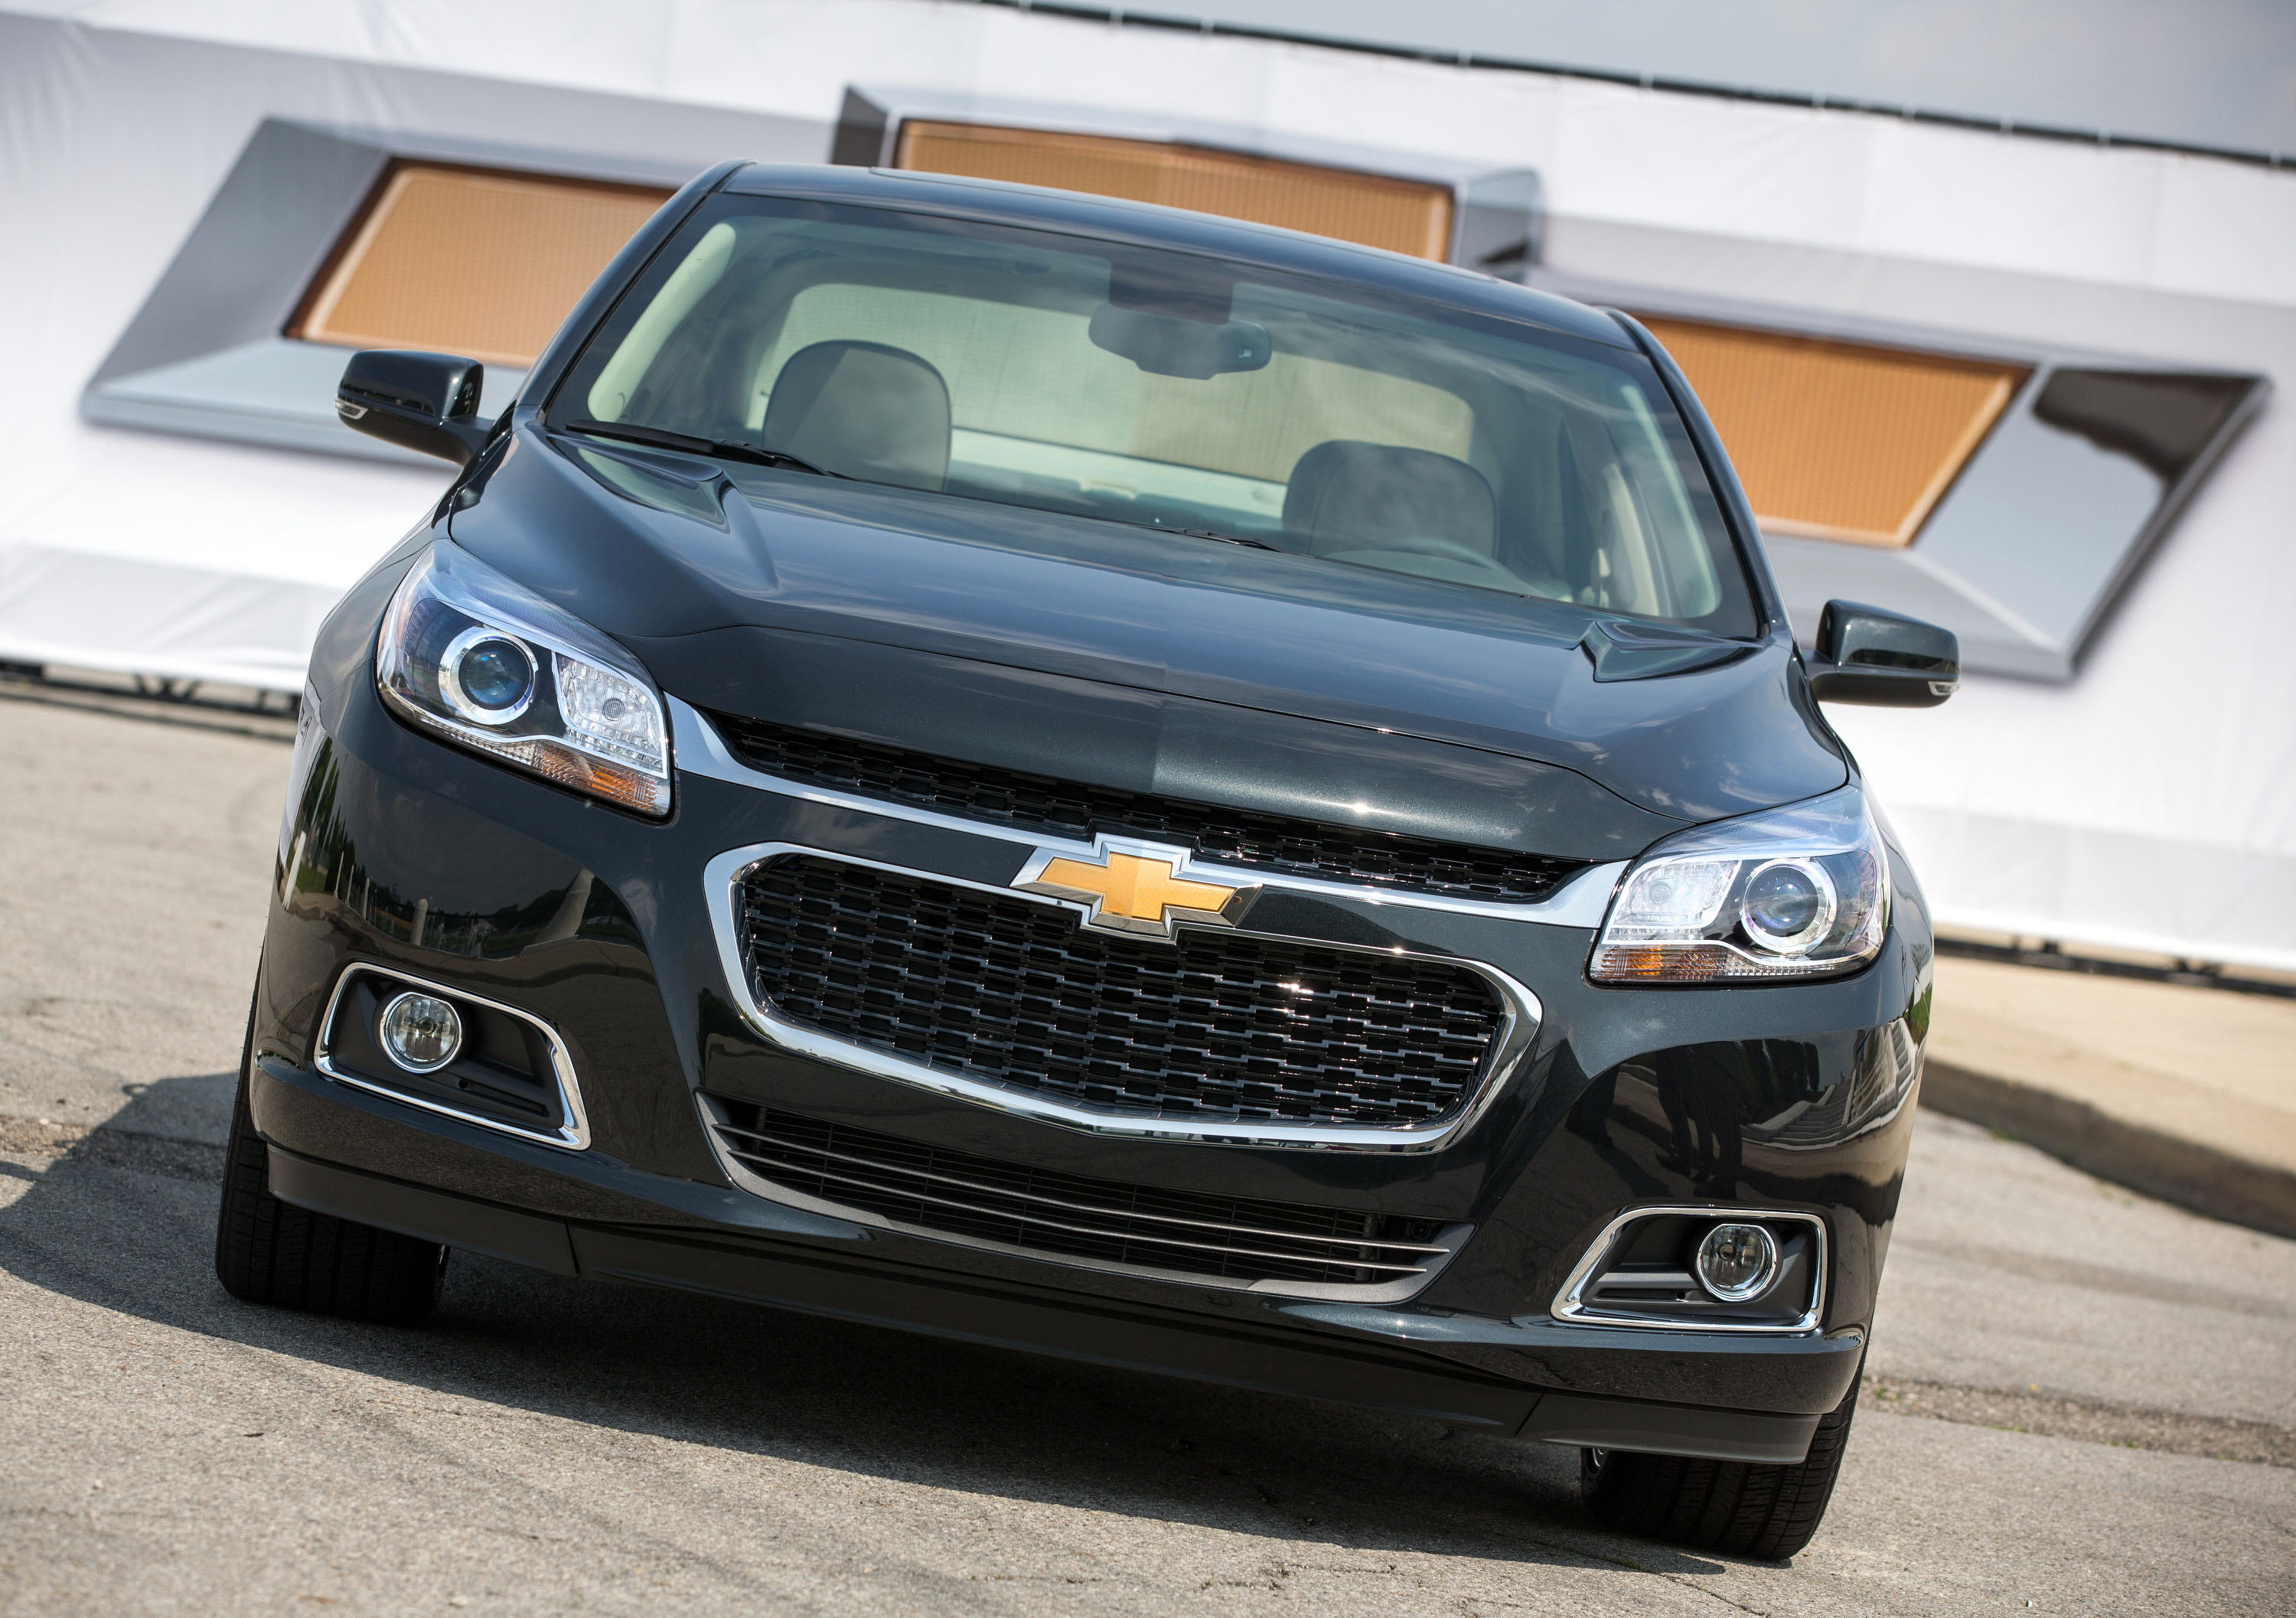 malibu review photos and chevrolet